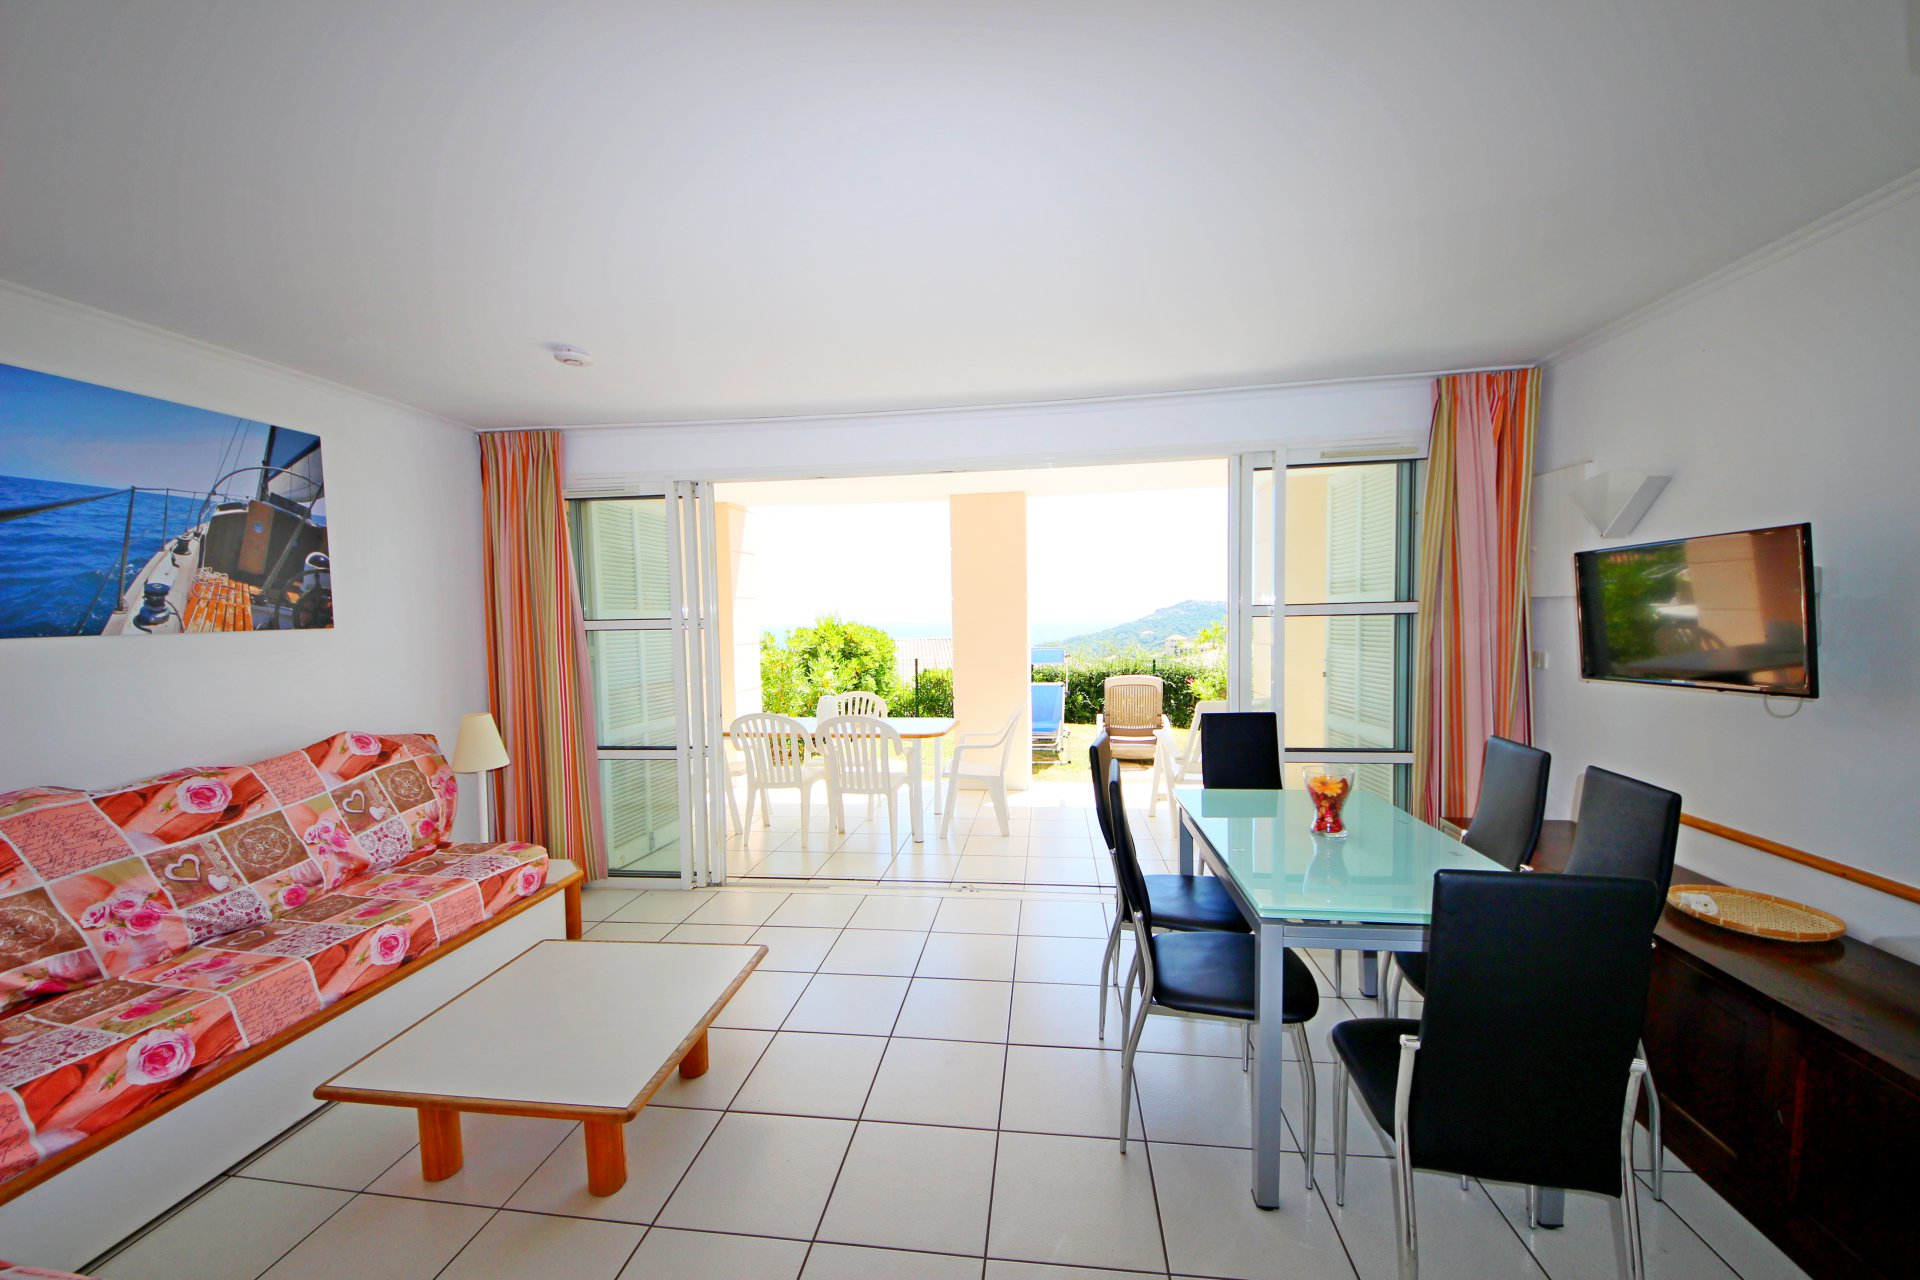 ApartmentStage 1st, View Panoramic sea, position south east, General condition Good, Kitchen Kitchenette, ...